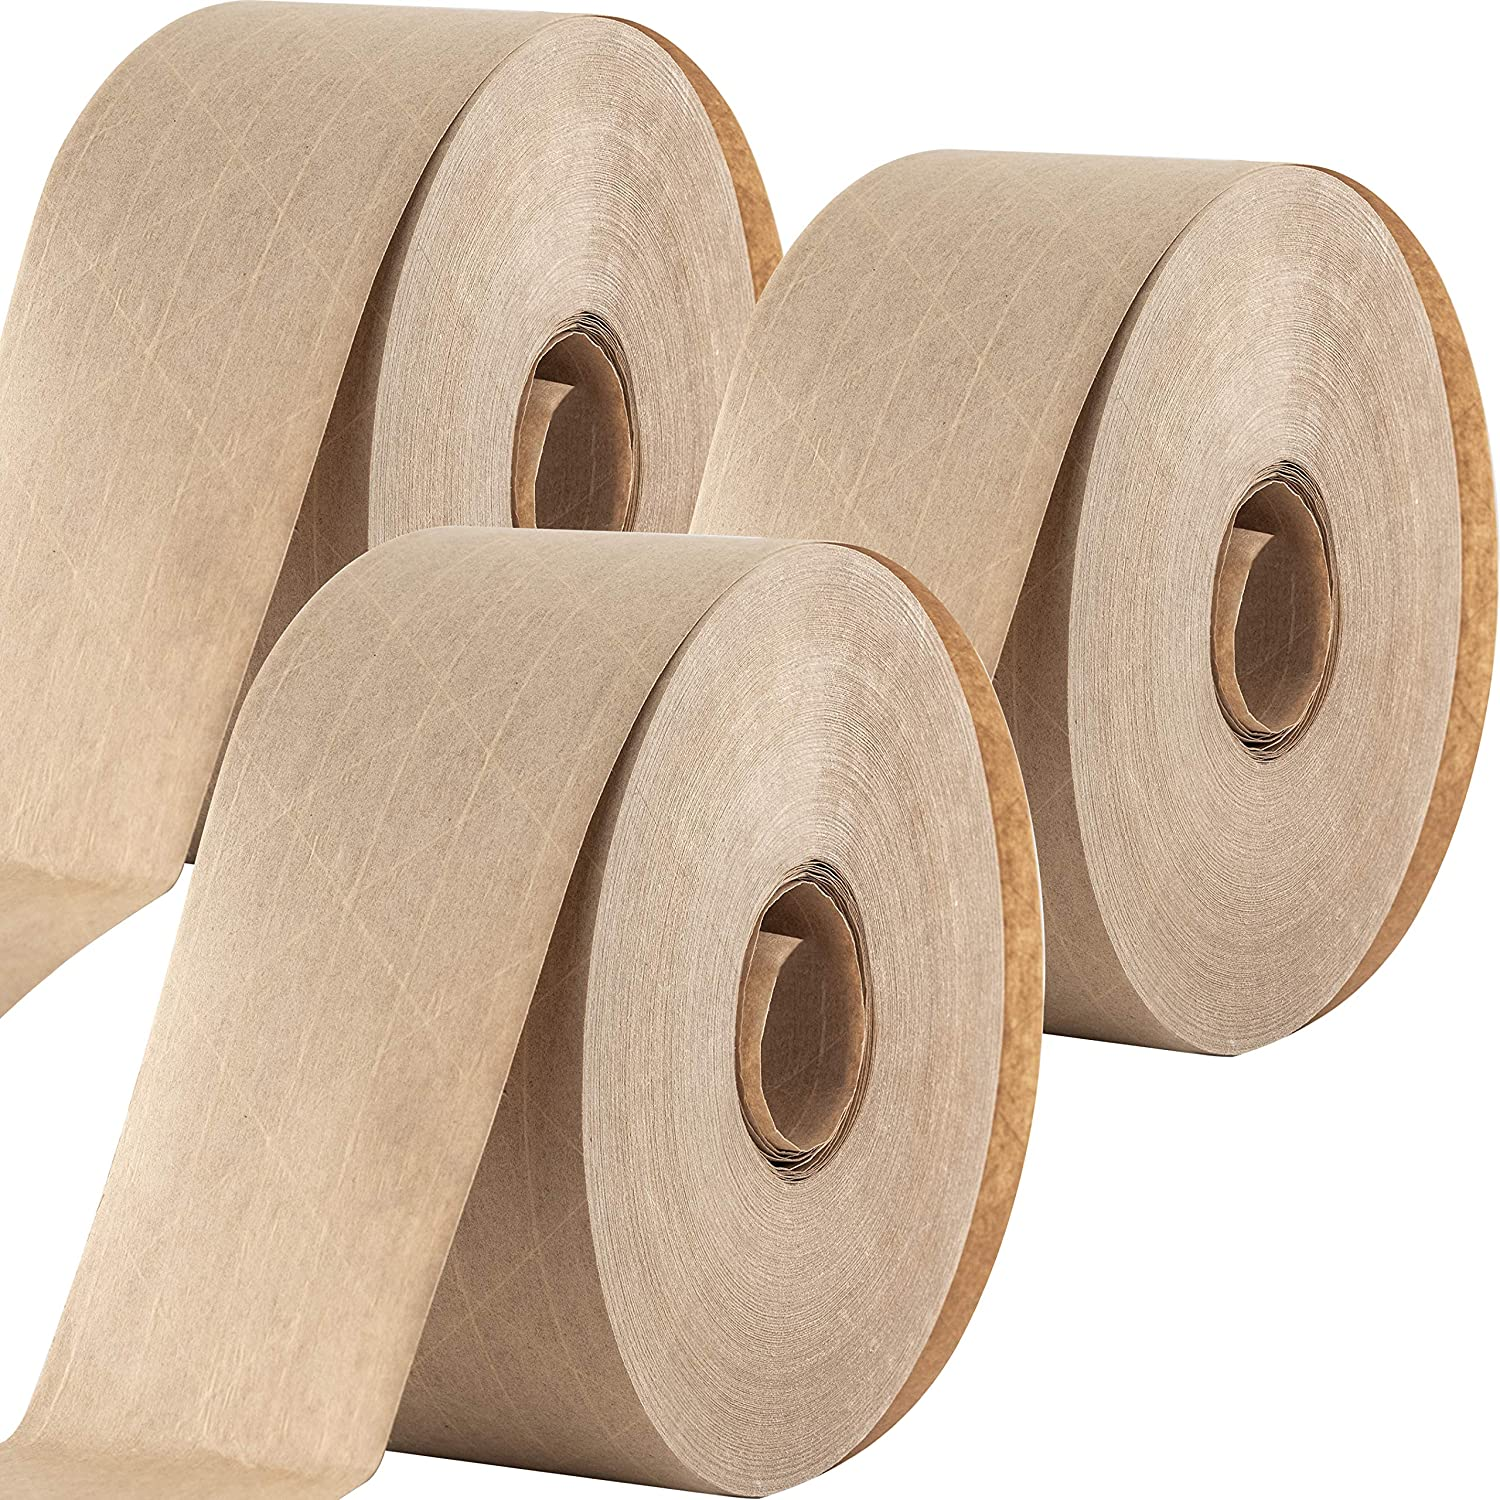 Ultra Durable Water-Activated Tape for Secure Packing 3 Pk. 2.75 Inch, 450 Ft Brown Kraft Gum Tape Provides Heavy Duty Adhesive for Packaging and Shipping. Fiberglass Reinforced for Extra Strong Bond.